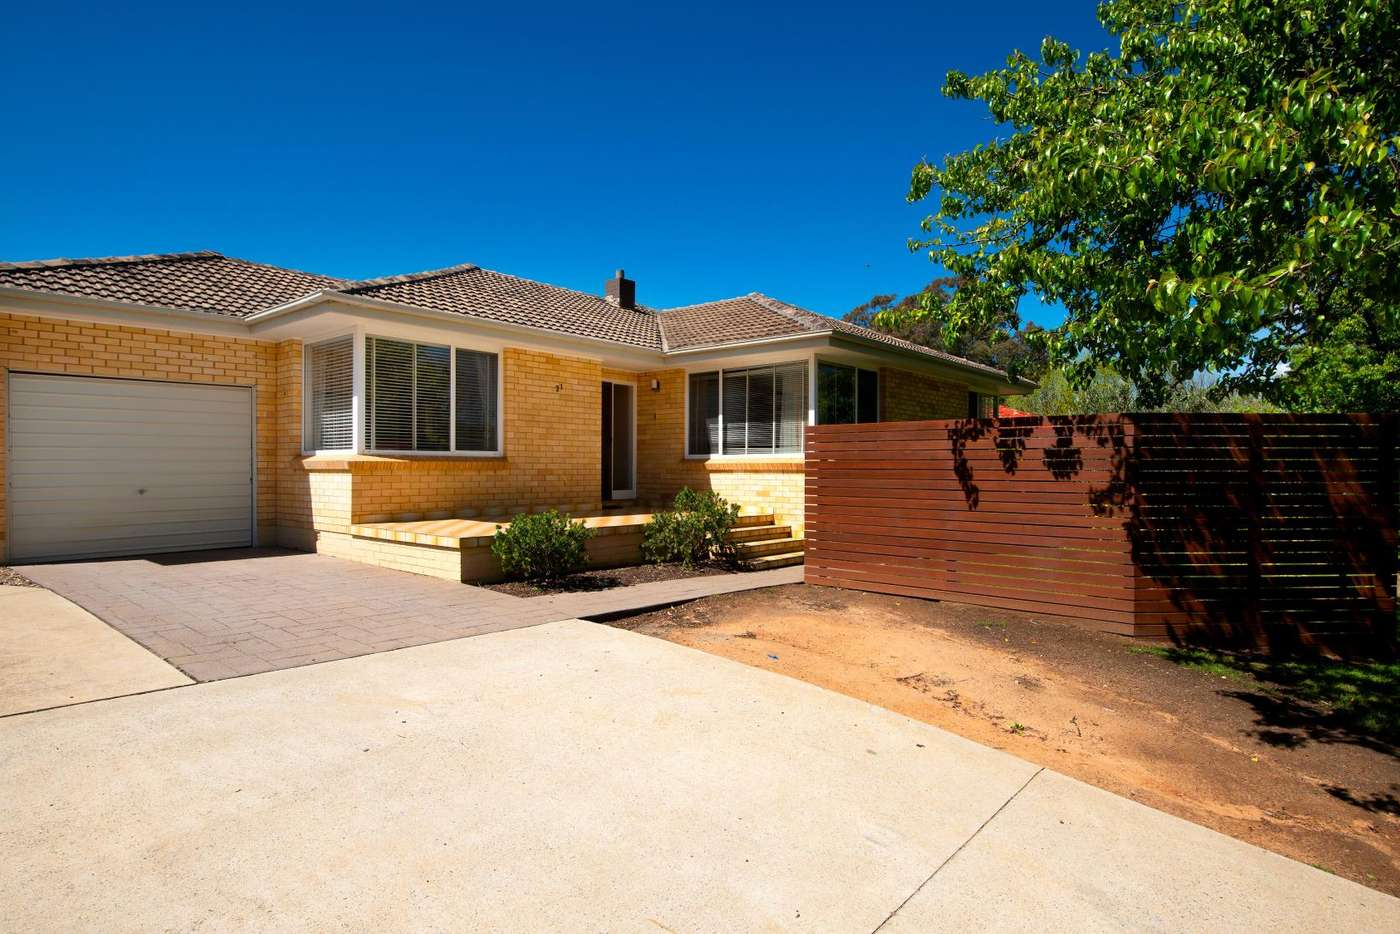 Main view of Homely house listing, 31 Theodore Street, Curtin ACT 2605